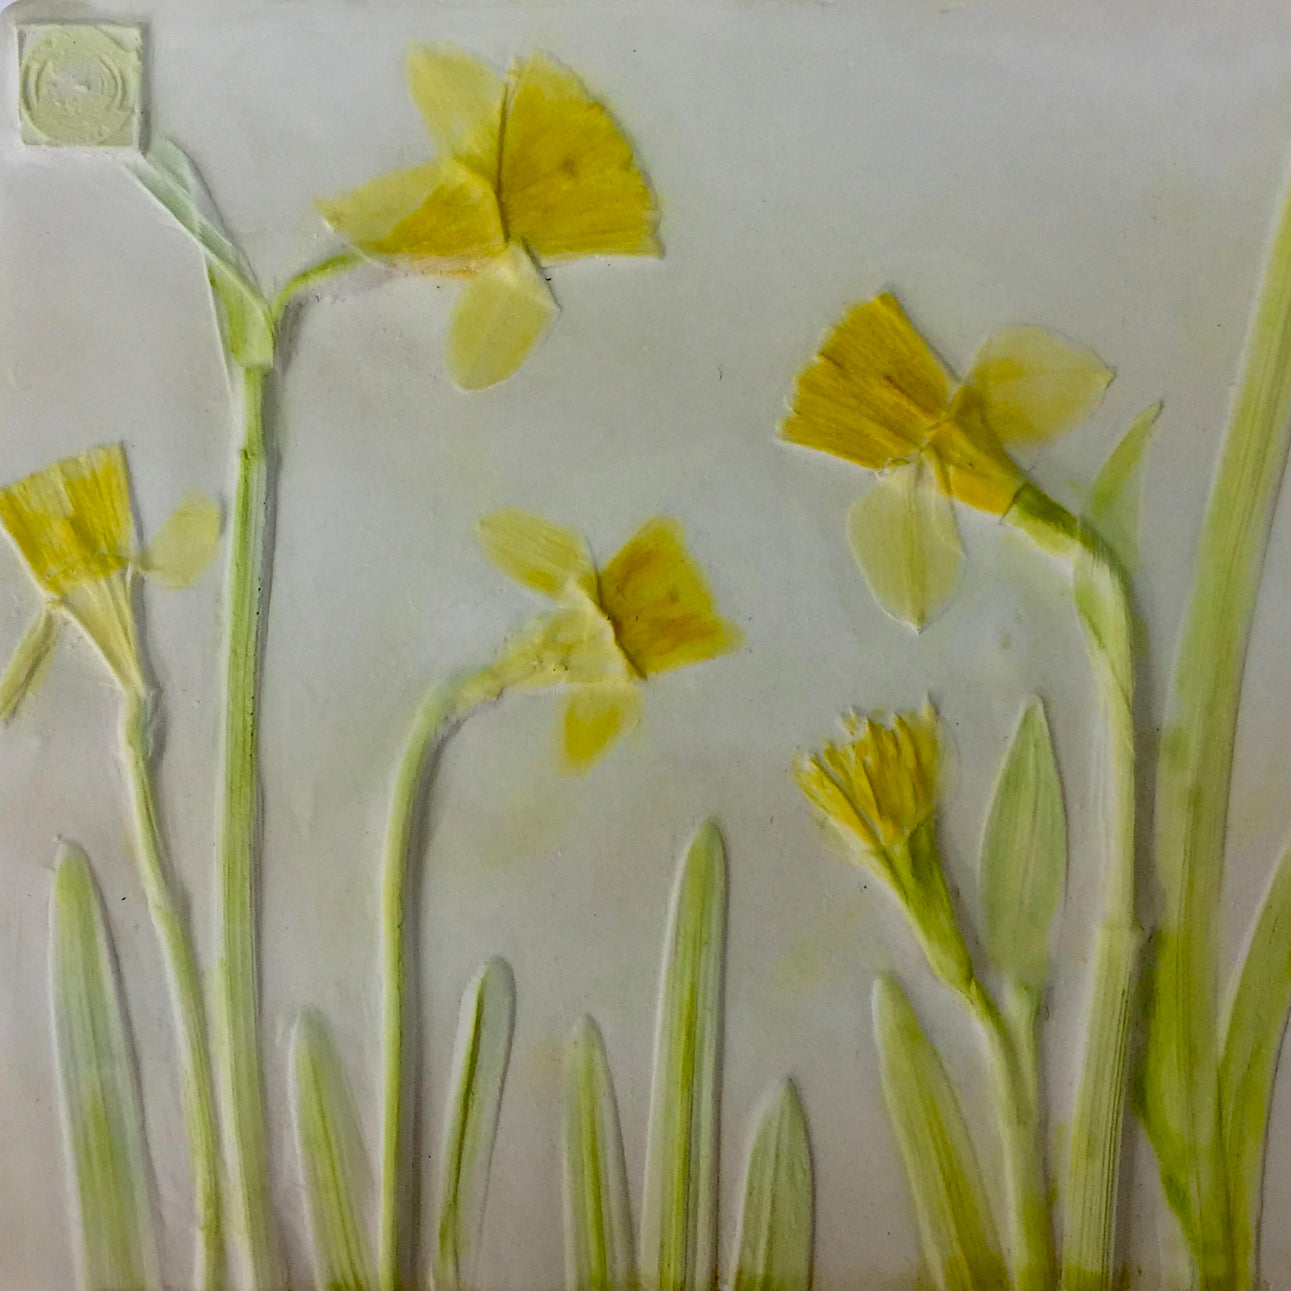 Botanical Art by Diane | Artfest Ontario